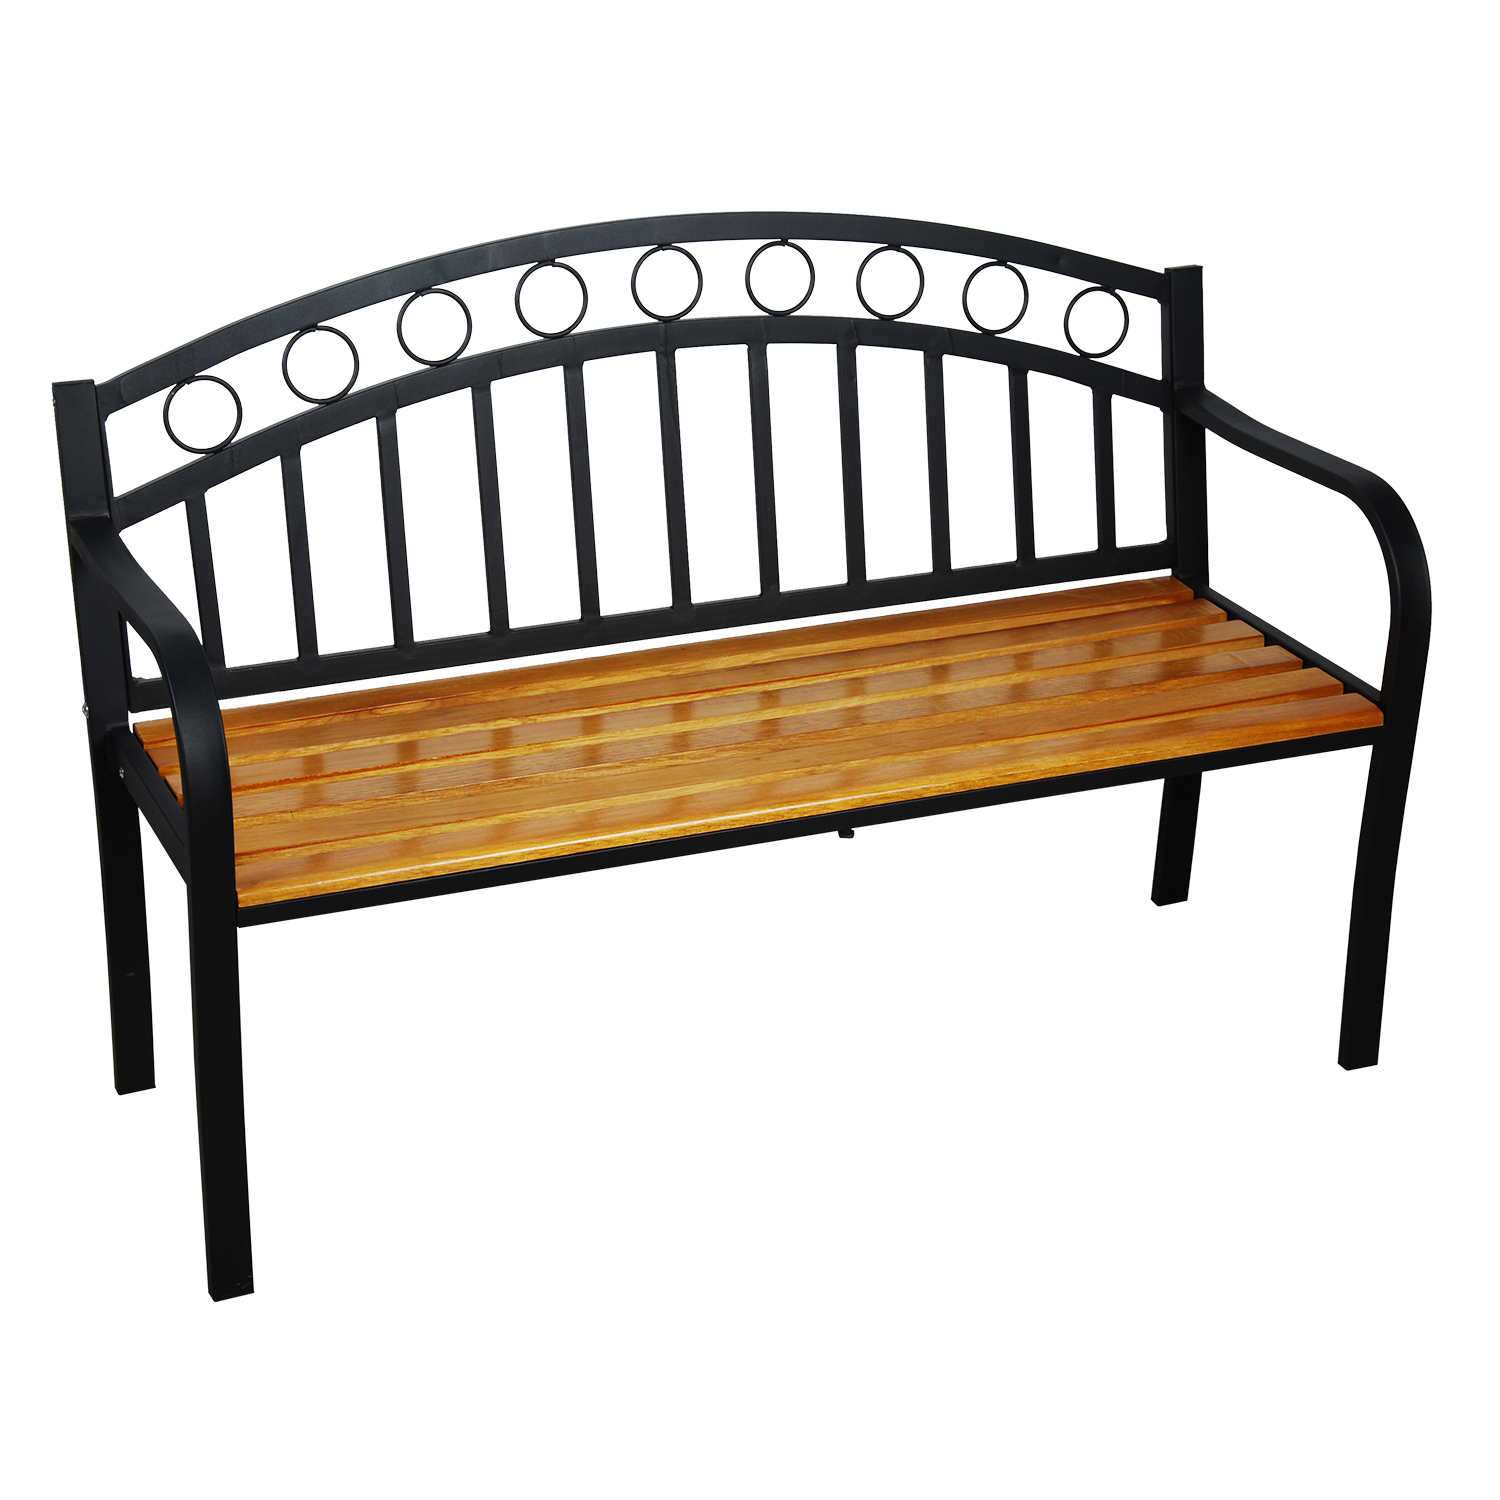 Outdoor garden benches metal iron outdoor bench white Garden benches metal